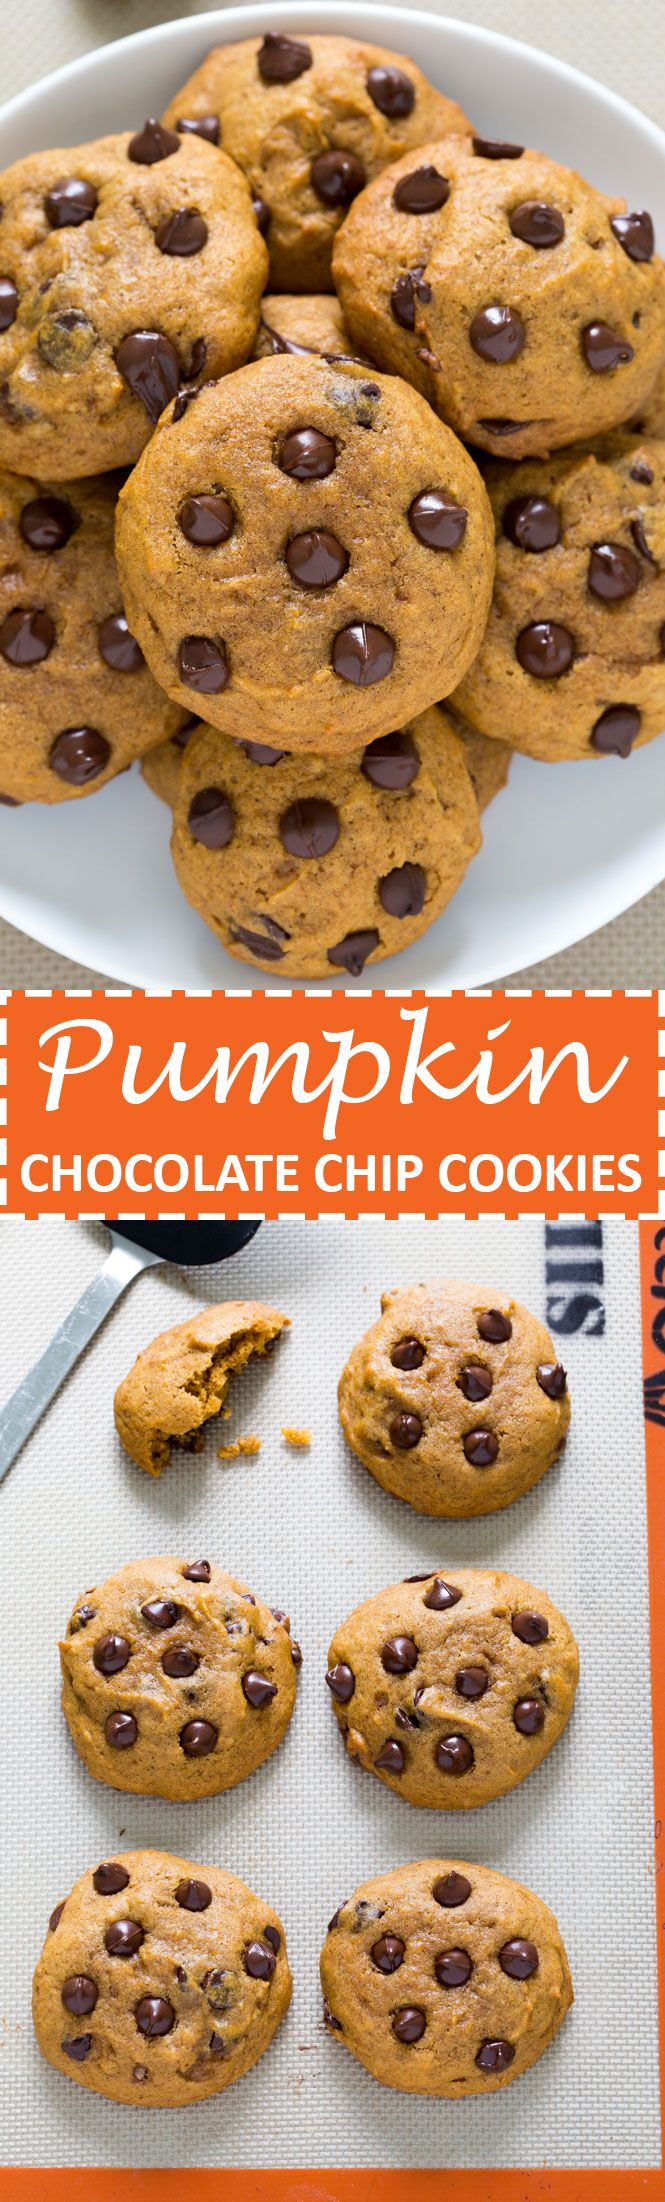 Soft and Cakey Pumpkin Chocolate Chip Cookies loaded with semi-sweet chocolate chips. Thick, spiced and super easy to make. The perfect cookie for Fall.- [someone else's caption, very slightly modified]